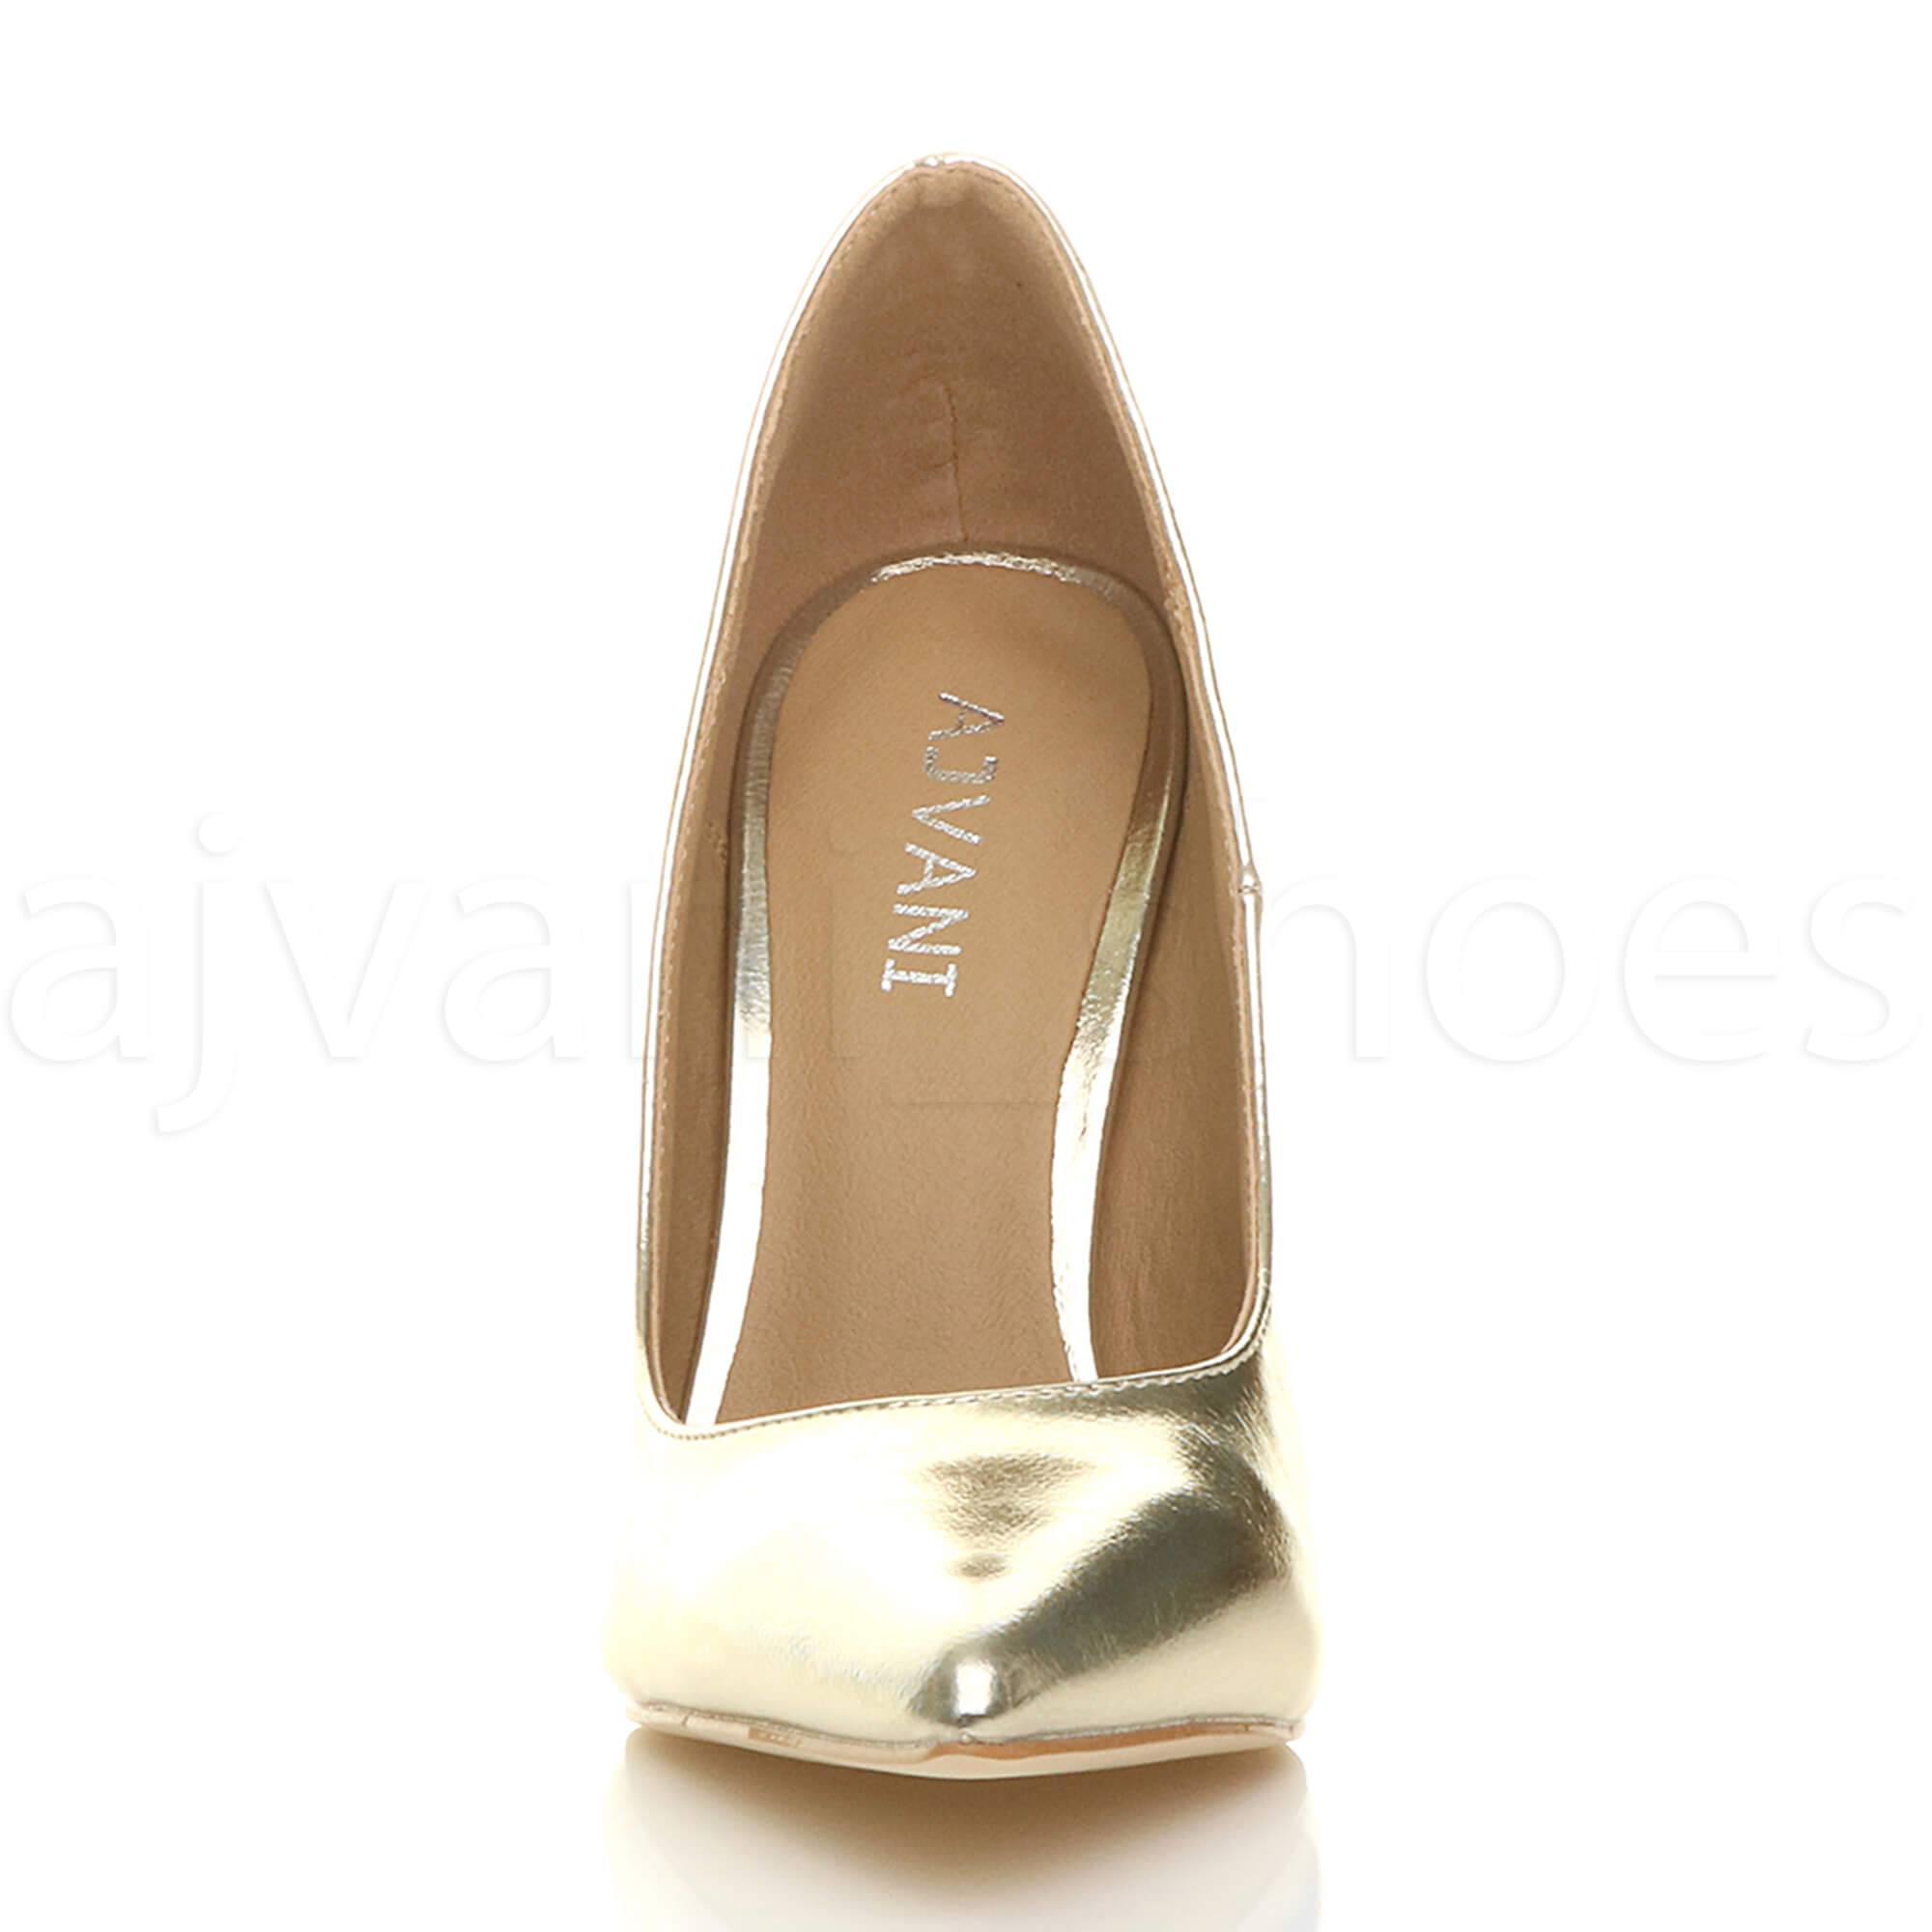 WOMENS-LADIES-HIGH-HEEL-POINTED-CONTRAST-COURT-SMART-PARTY-WORK-SHOES-PUMPS-SIZE thumbnail 69